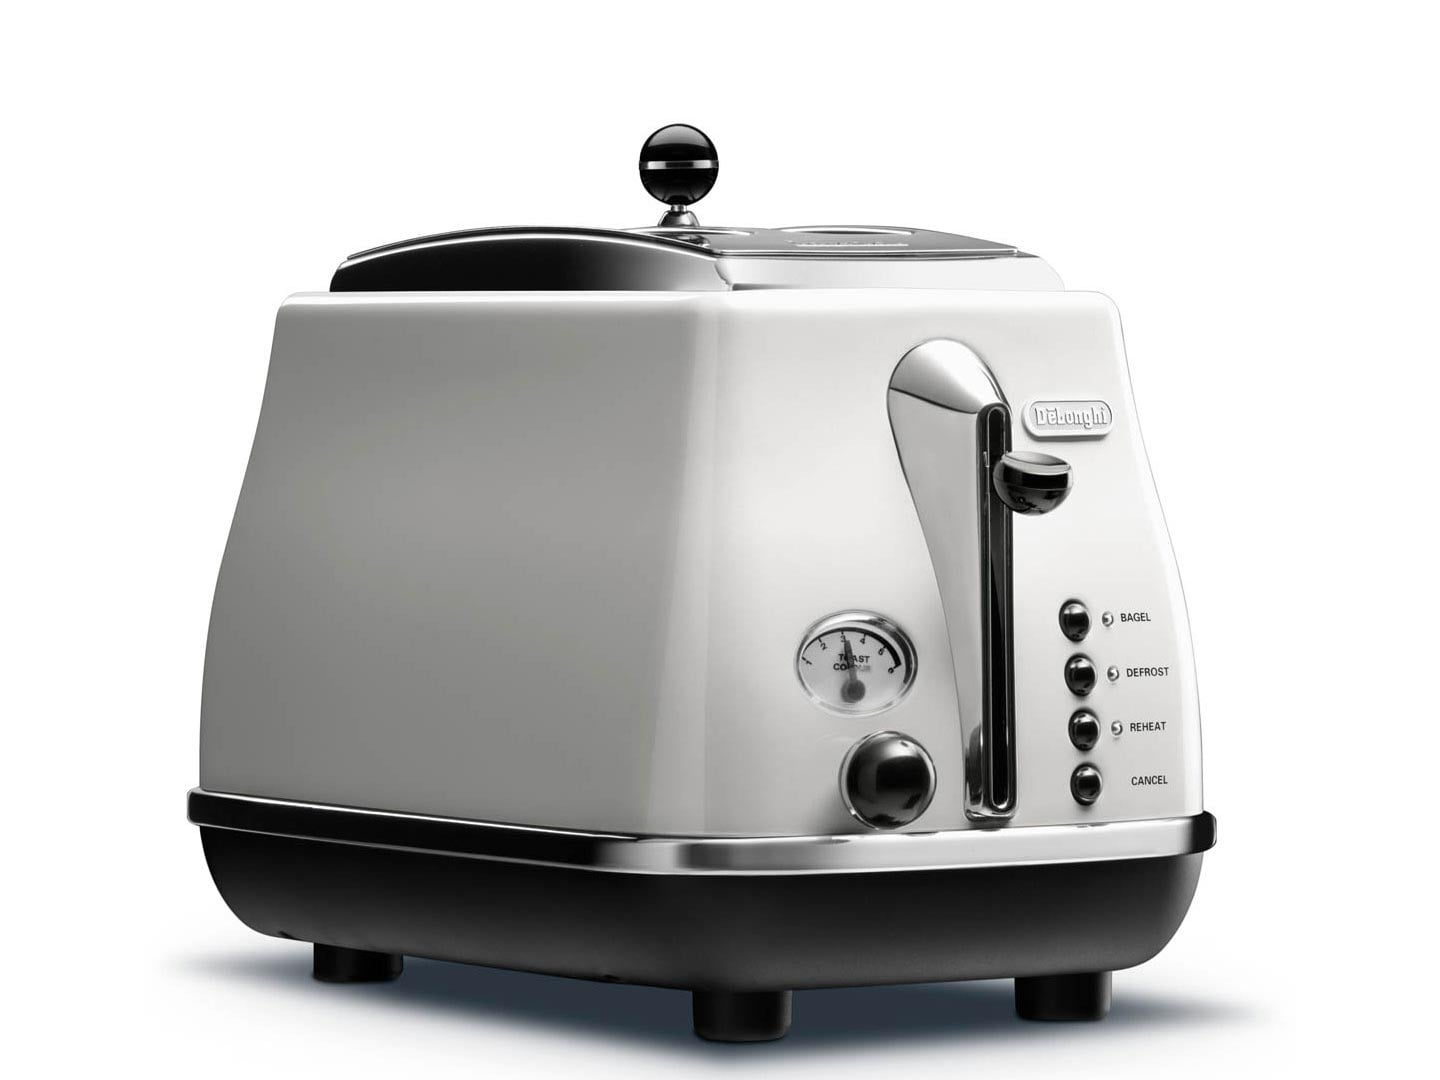 Clearance Stock: Icona 2 Slice Toaster - White - CTO 2003.W